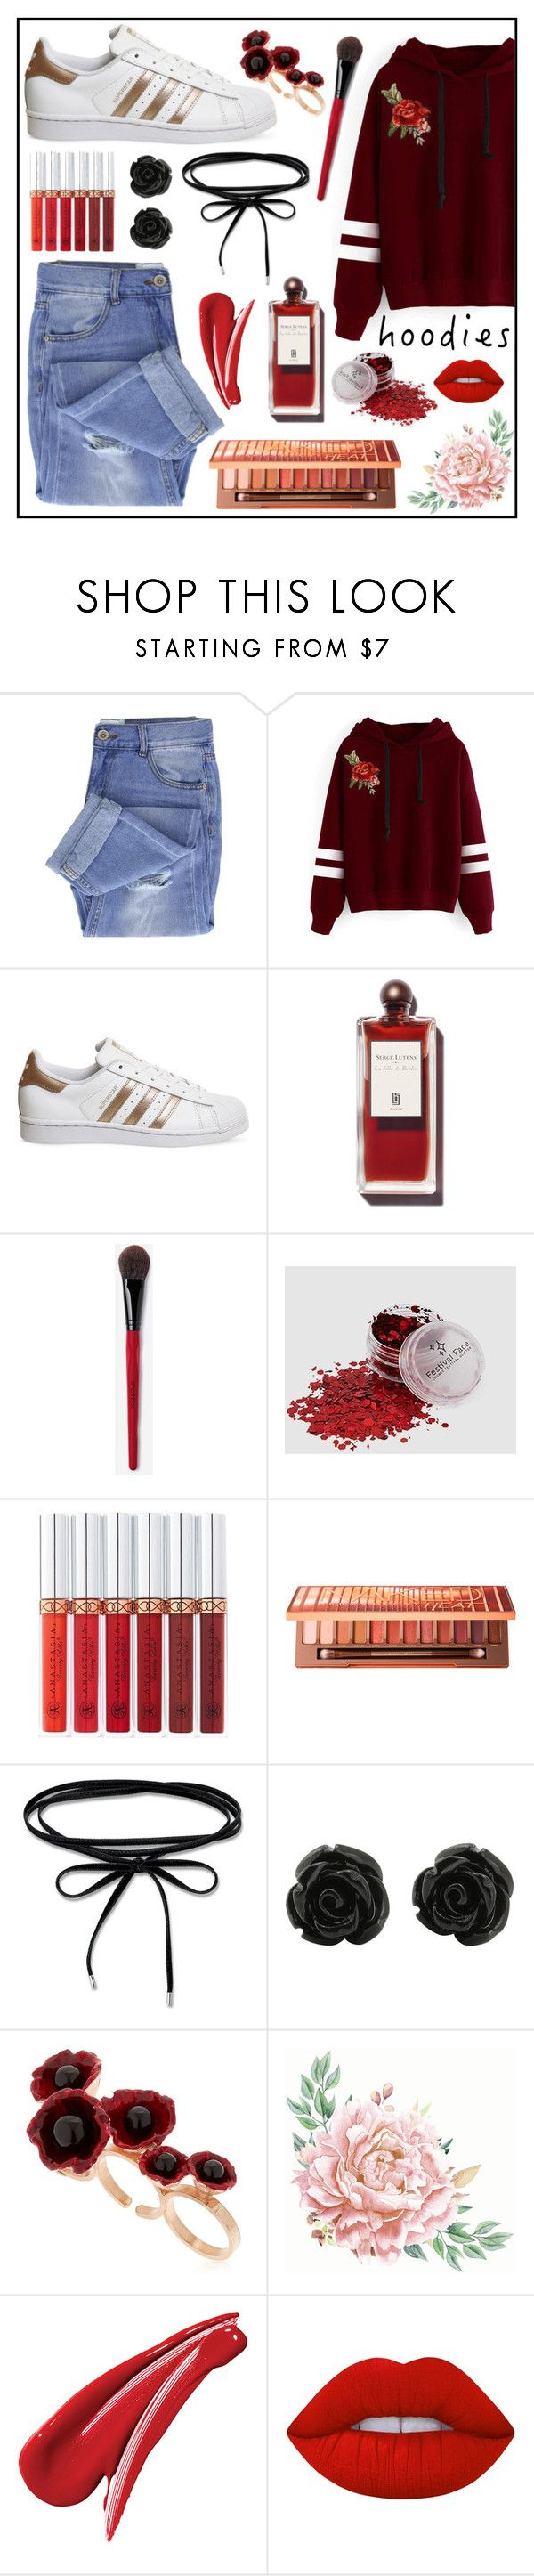 """""""Roses Gold & Hoodies"""" by shaneen-sinnamon ❤ liked on Polyvore featuring Taya, WithChic, adidas, Anastasia Beverly Hills, Urban Decay, Futuro Remoto, Lime Crime and Hoodies"""